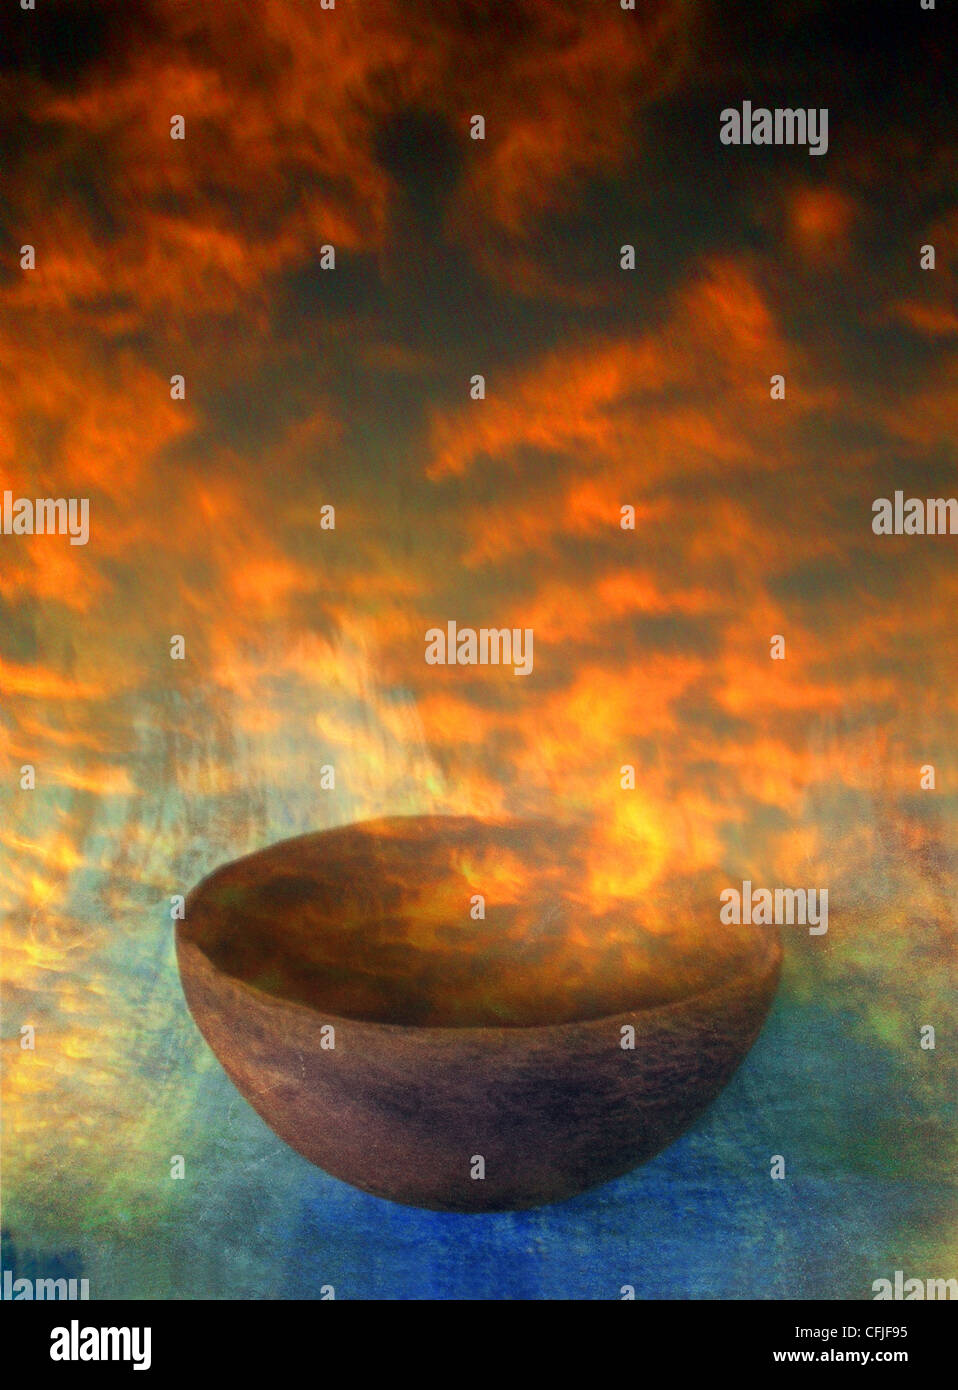 Dawn rising from an ancient bowl. - Stock Image